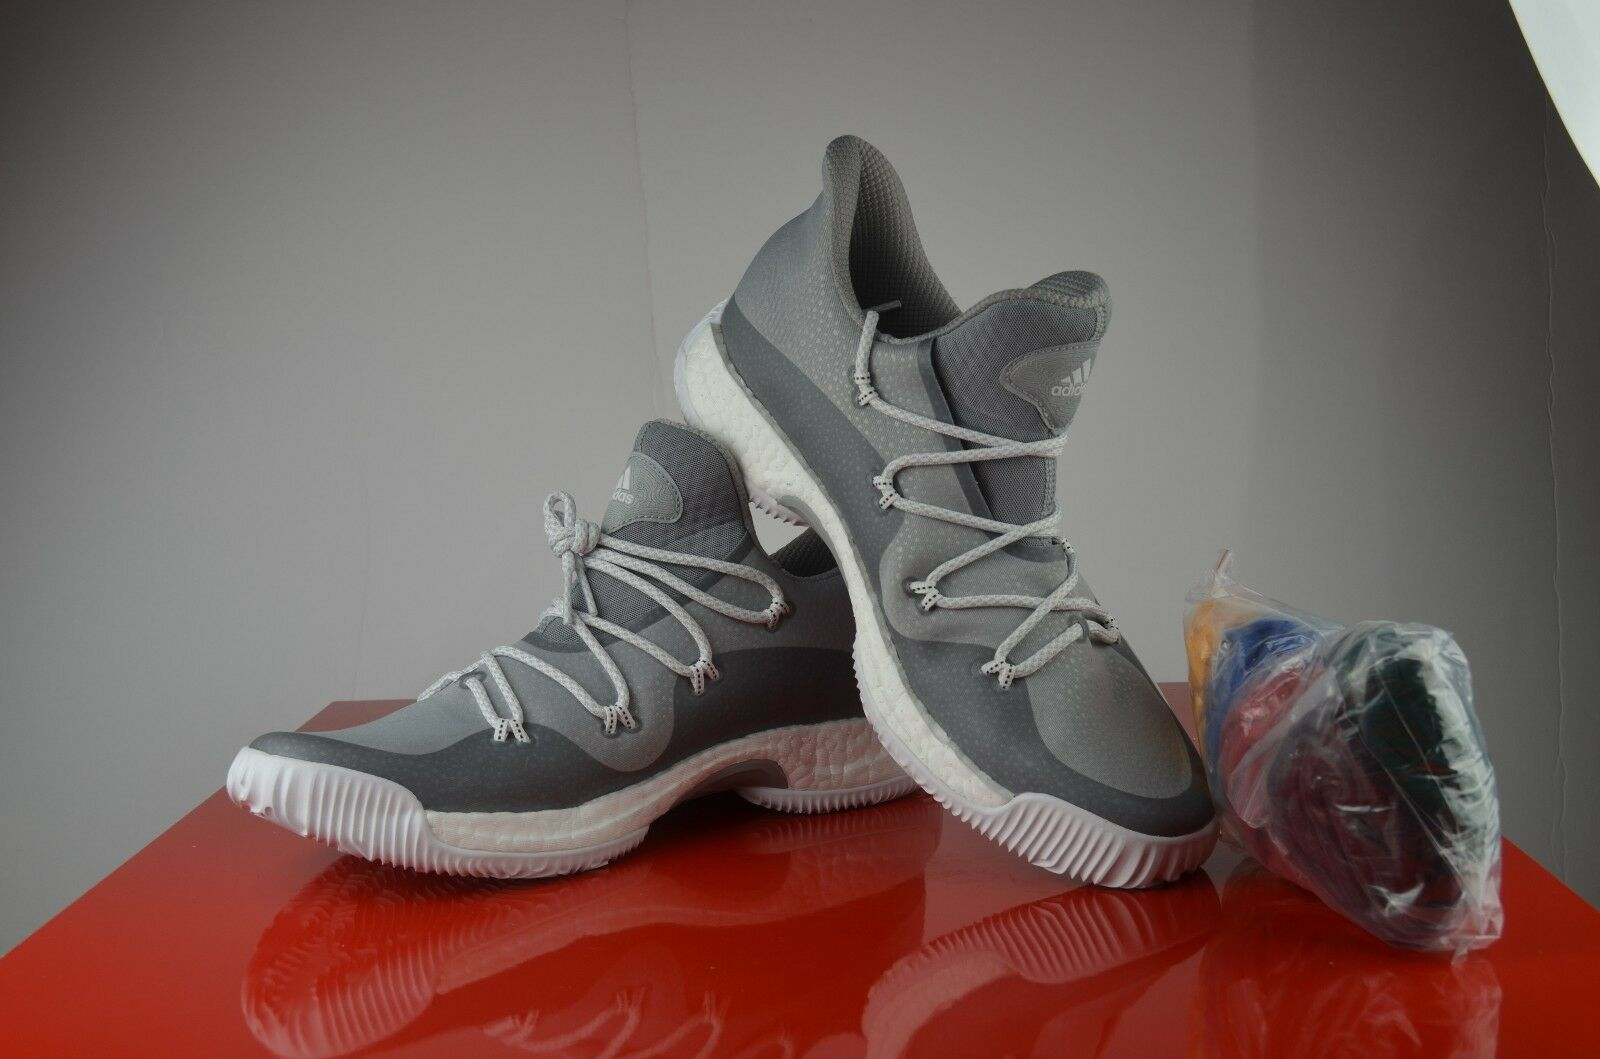 ADIDAS CRAZY EXPLOSIVE LOW PRIMEKNIT WHITE BASKETBALL SHOES MENS sz12.5 BY3254